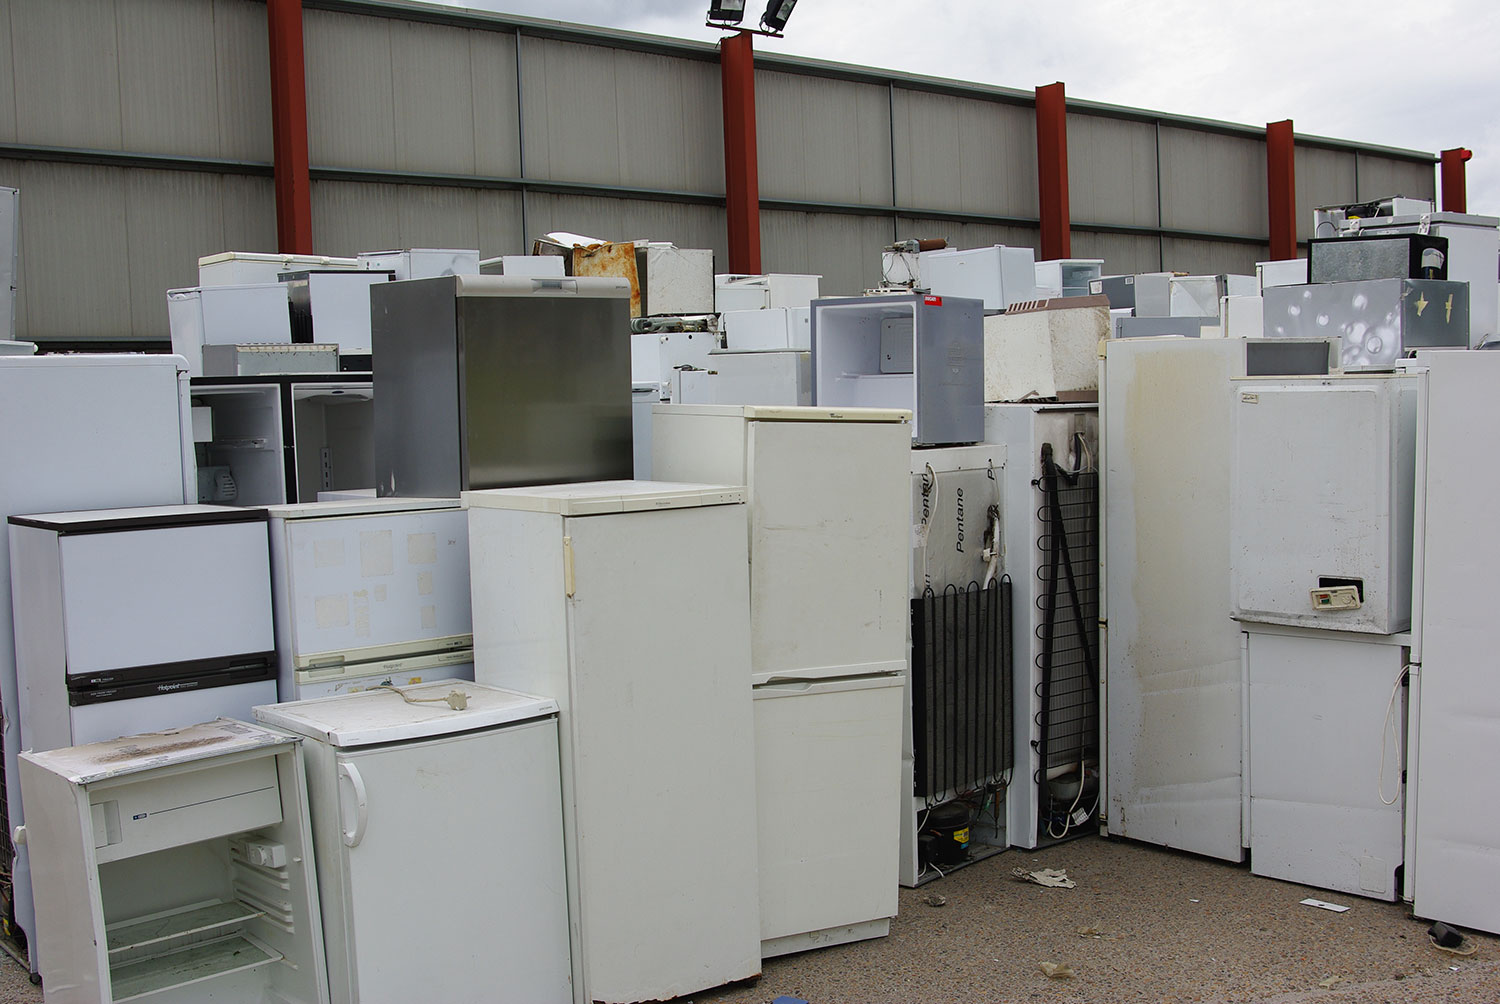 Fridges-for-recycling